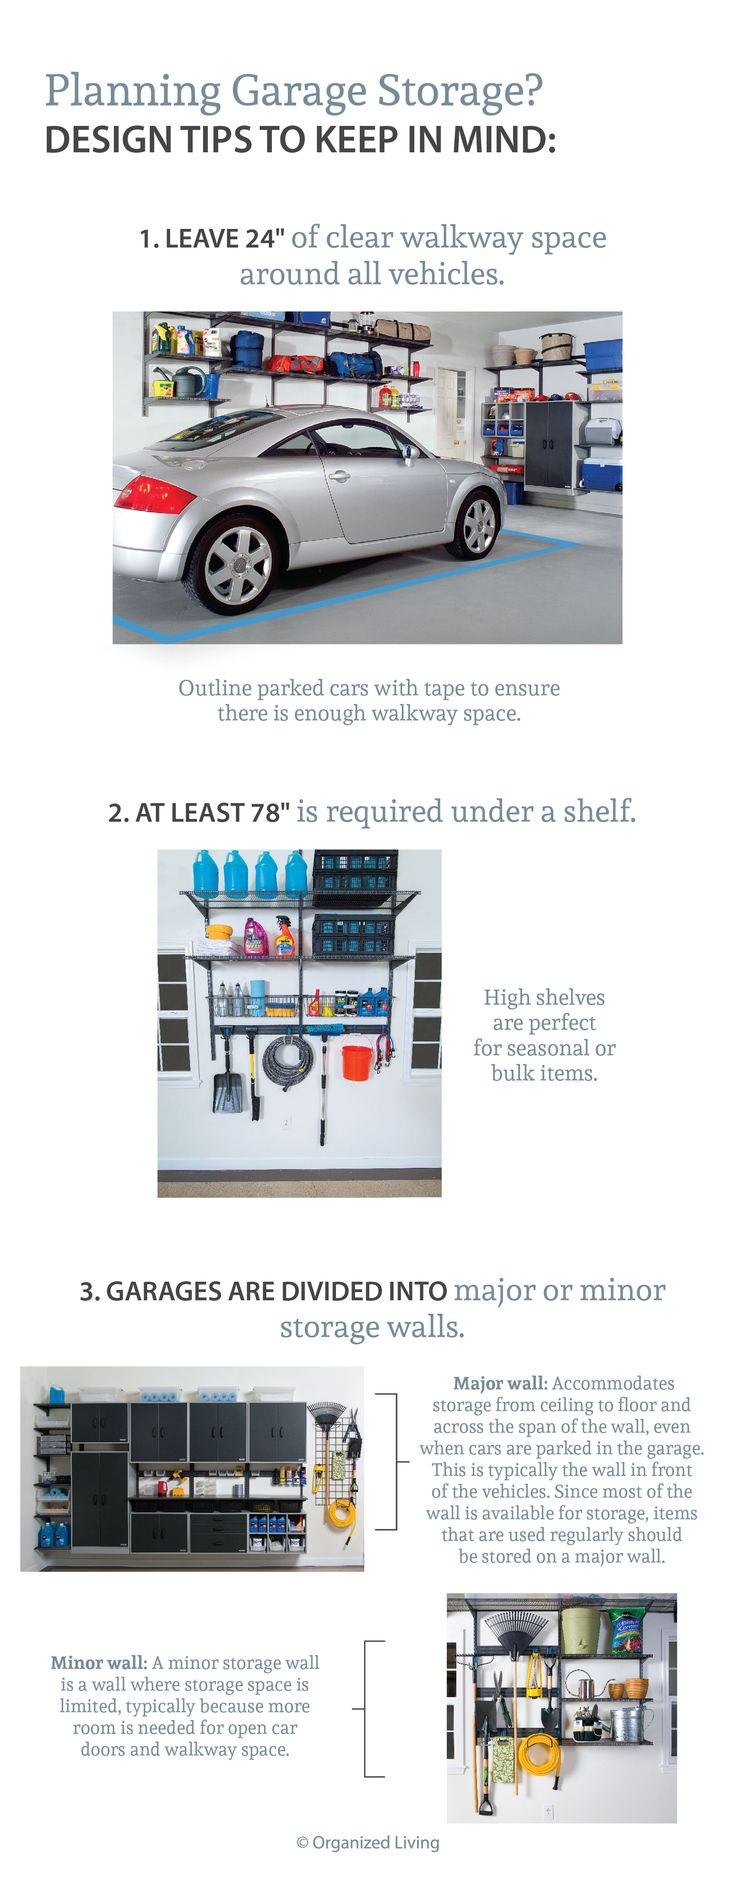 3 design tips for planning your garage storage  OrganizedLiving. 17 Best images about Great Garage Storage   Organized Living on